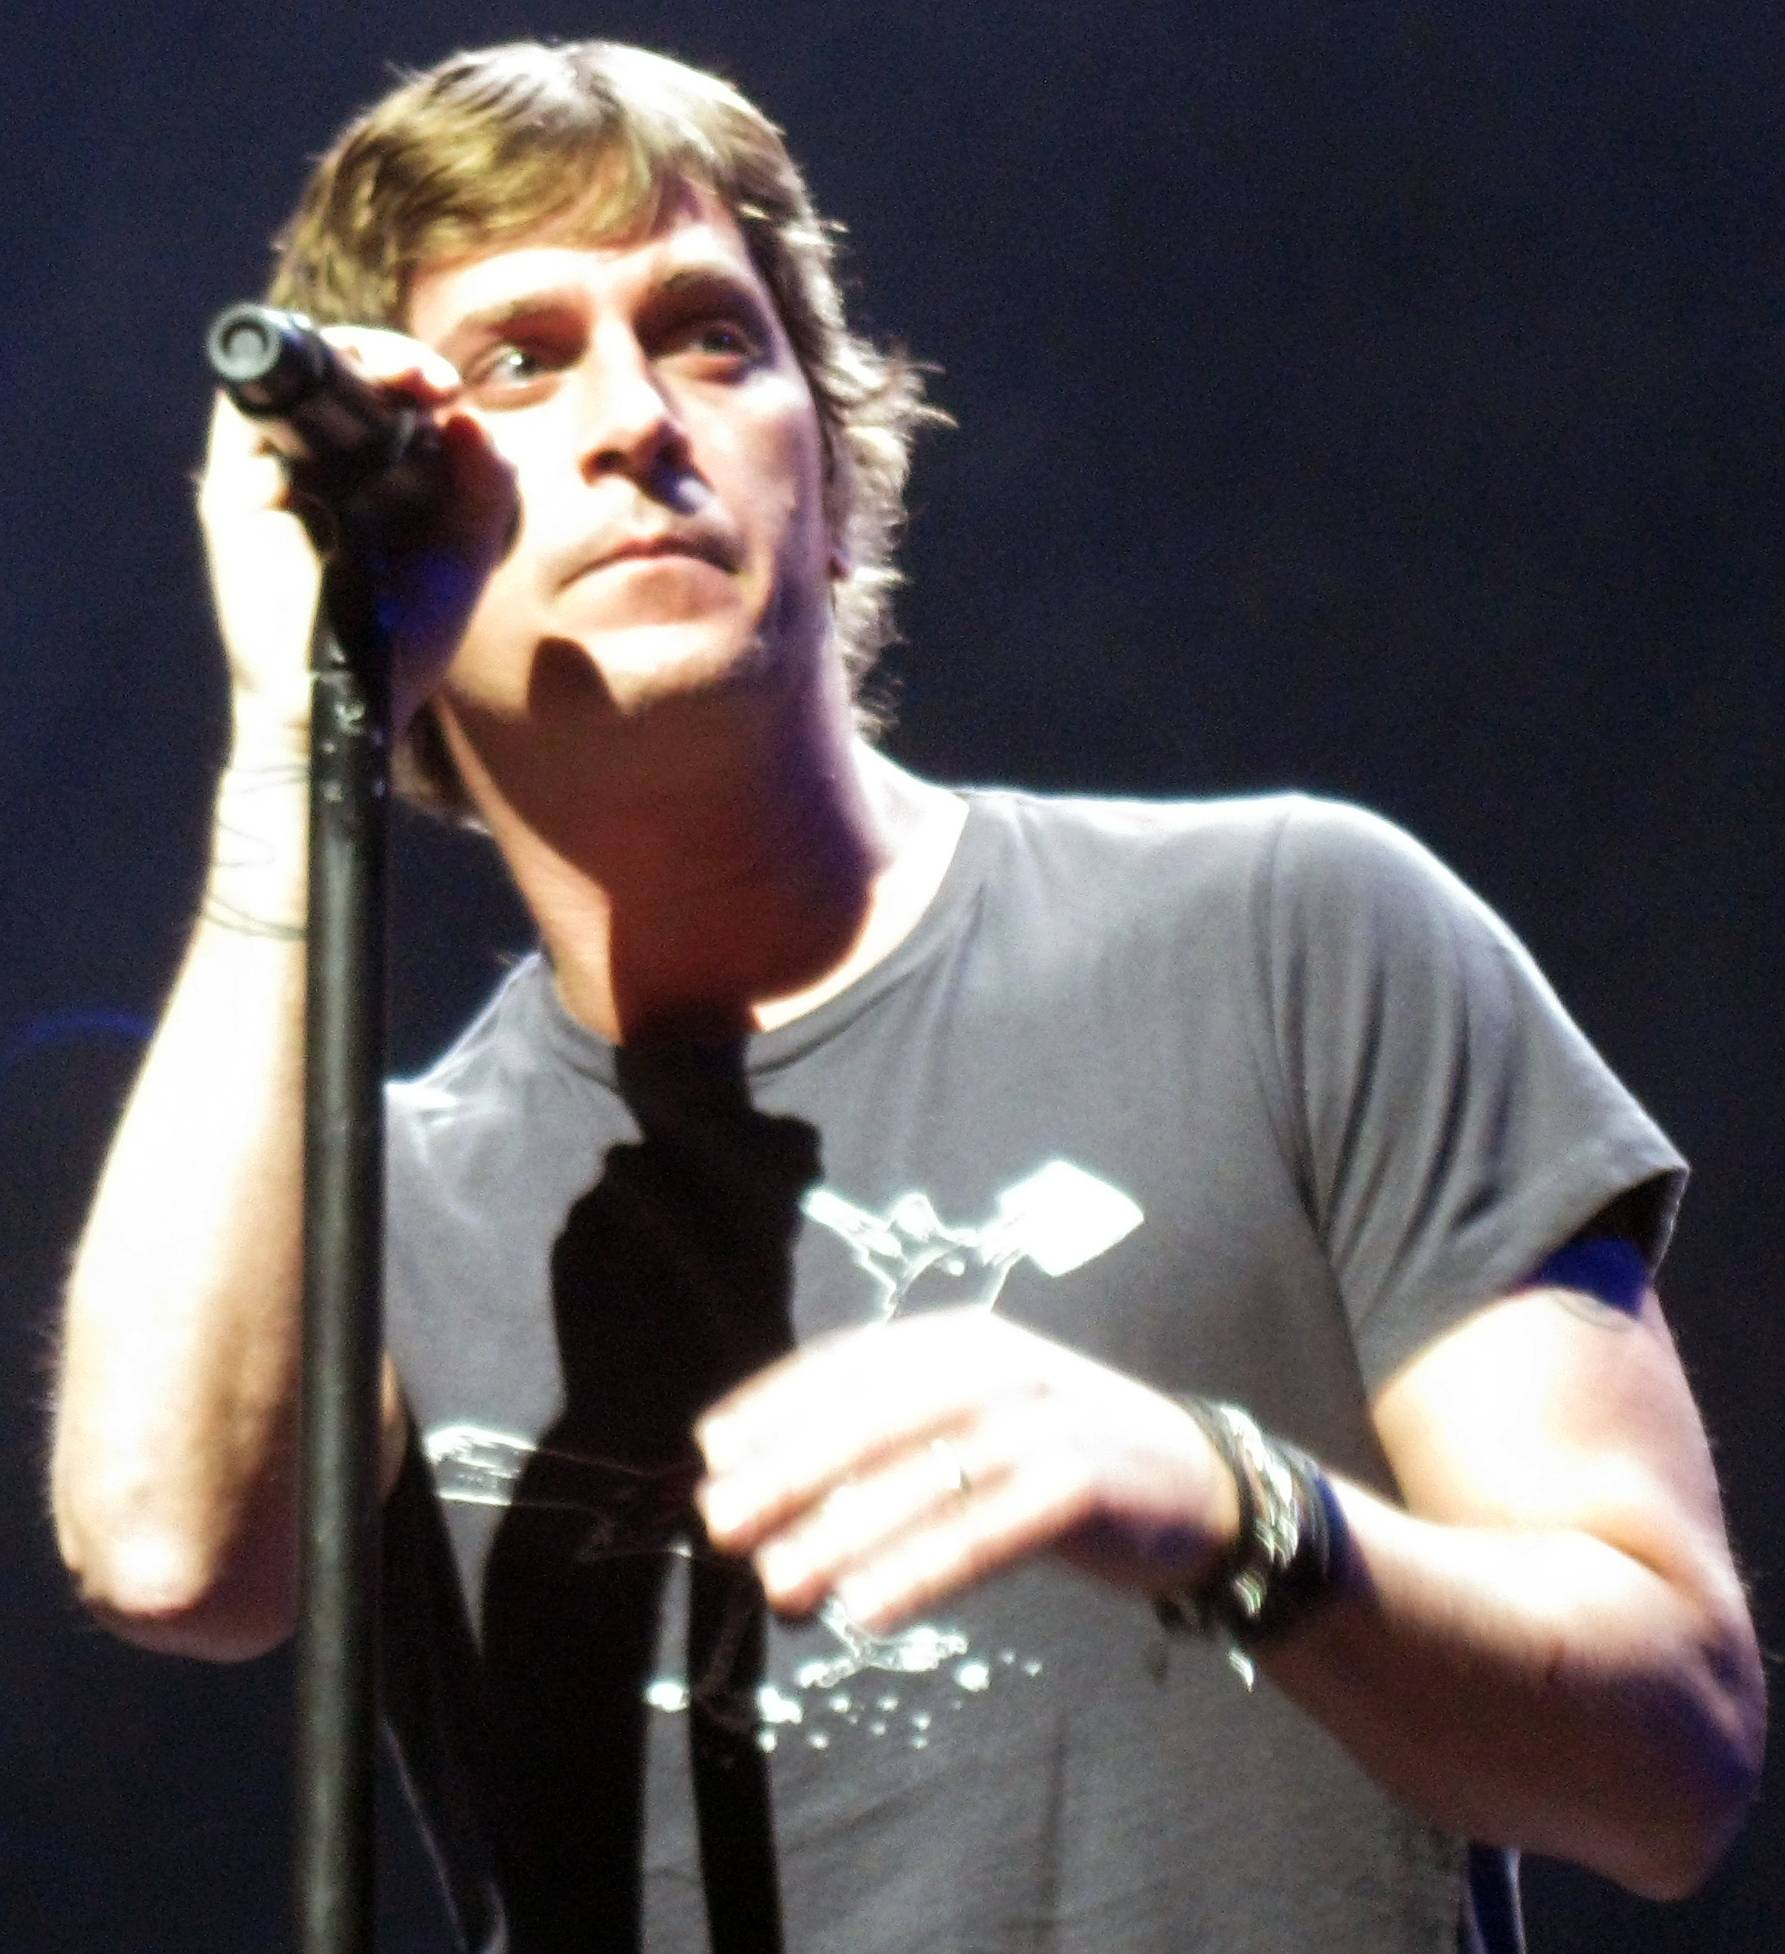 The 48-year old son of father (?) and mother(?) Rob Thomas in 2020 photo. Rob Thomas earned a million dollar salary - leaving the net worth at 2 million in 2020